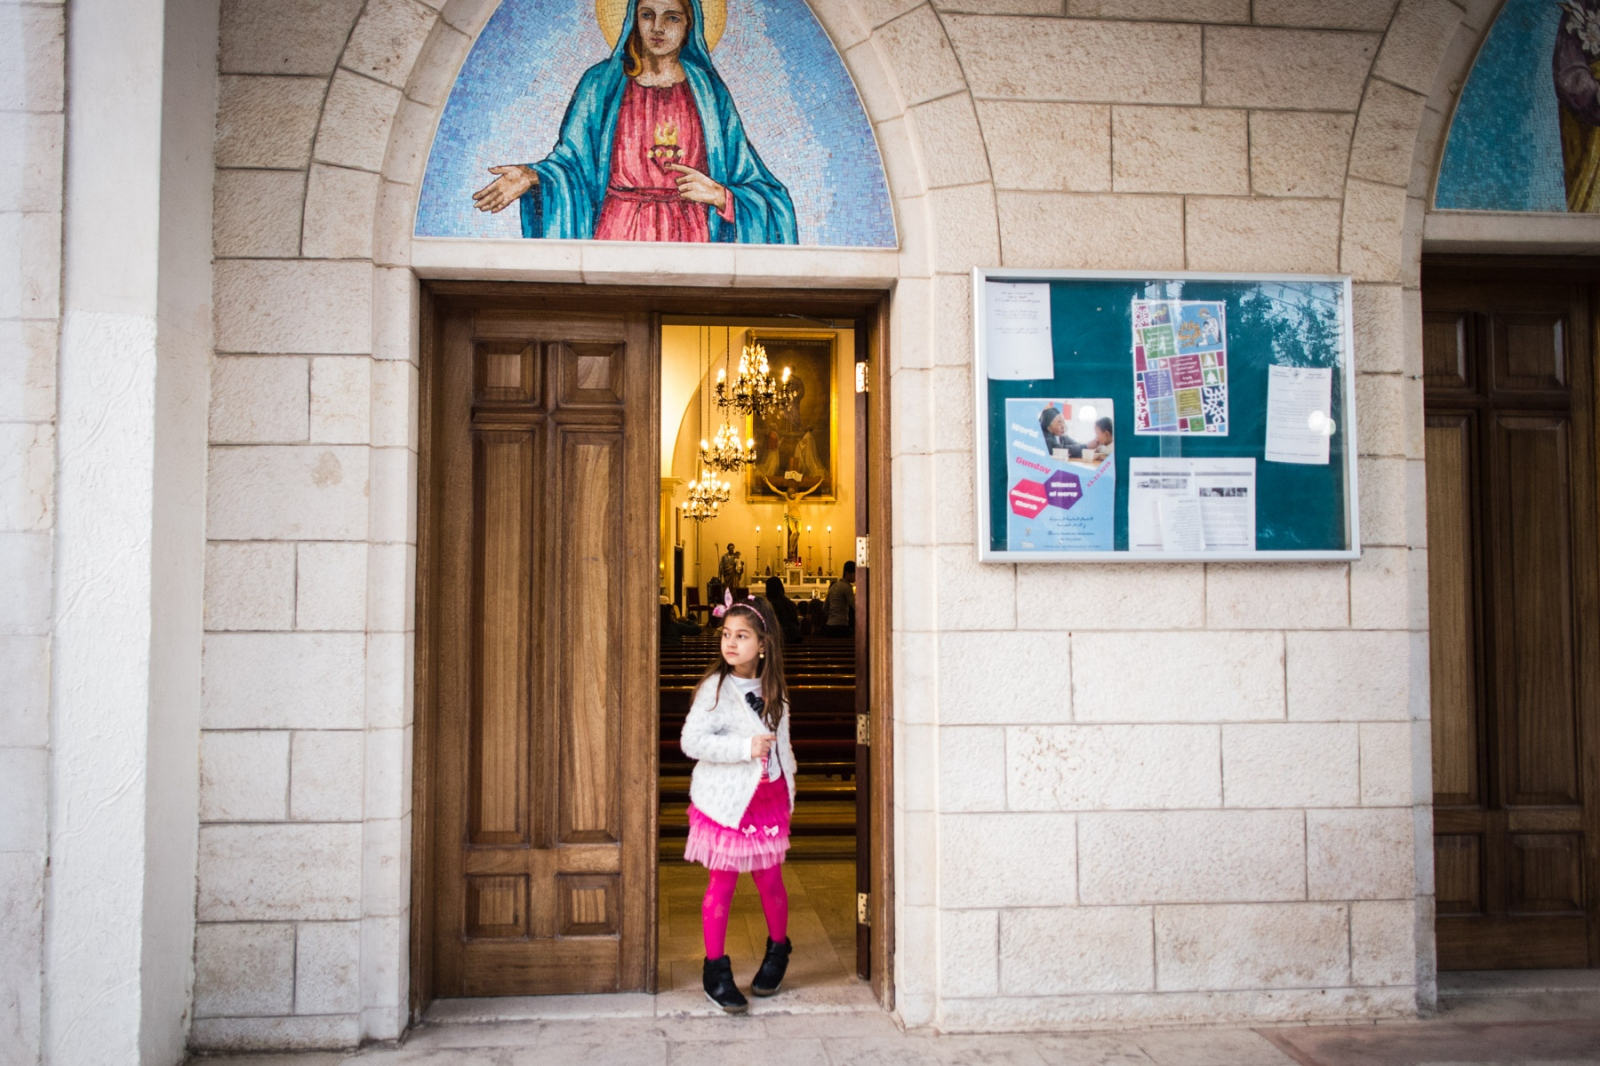 Faustina, 4, stands in the doorway of the Mar Youssef church in Amman, Jordan, on Nov. 4, 2016. She has lived in Amman with her family since fleeing Mosul over a year ago when ISIS took over.